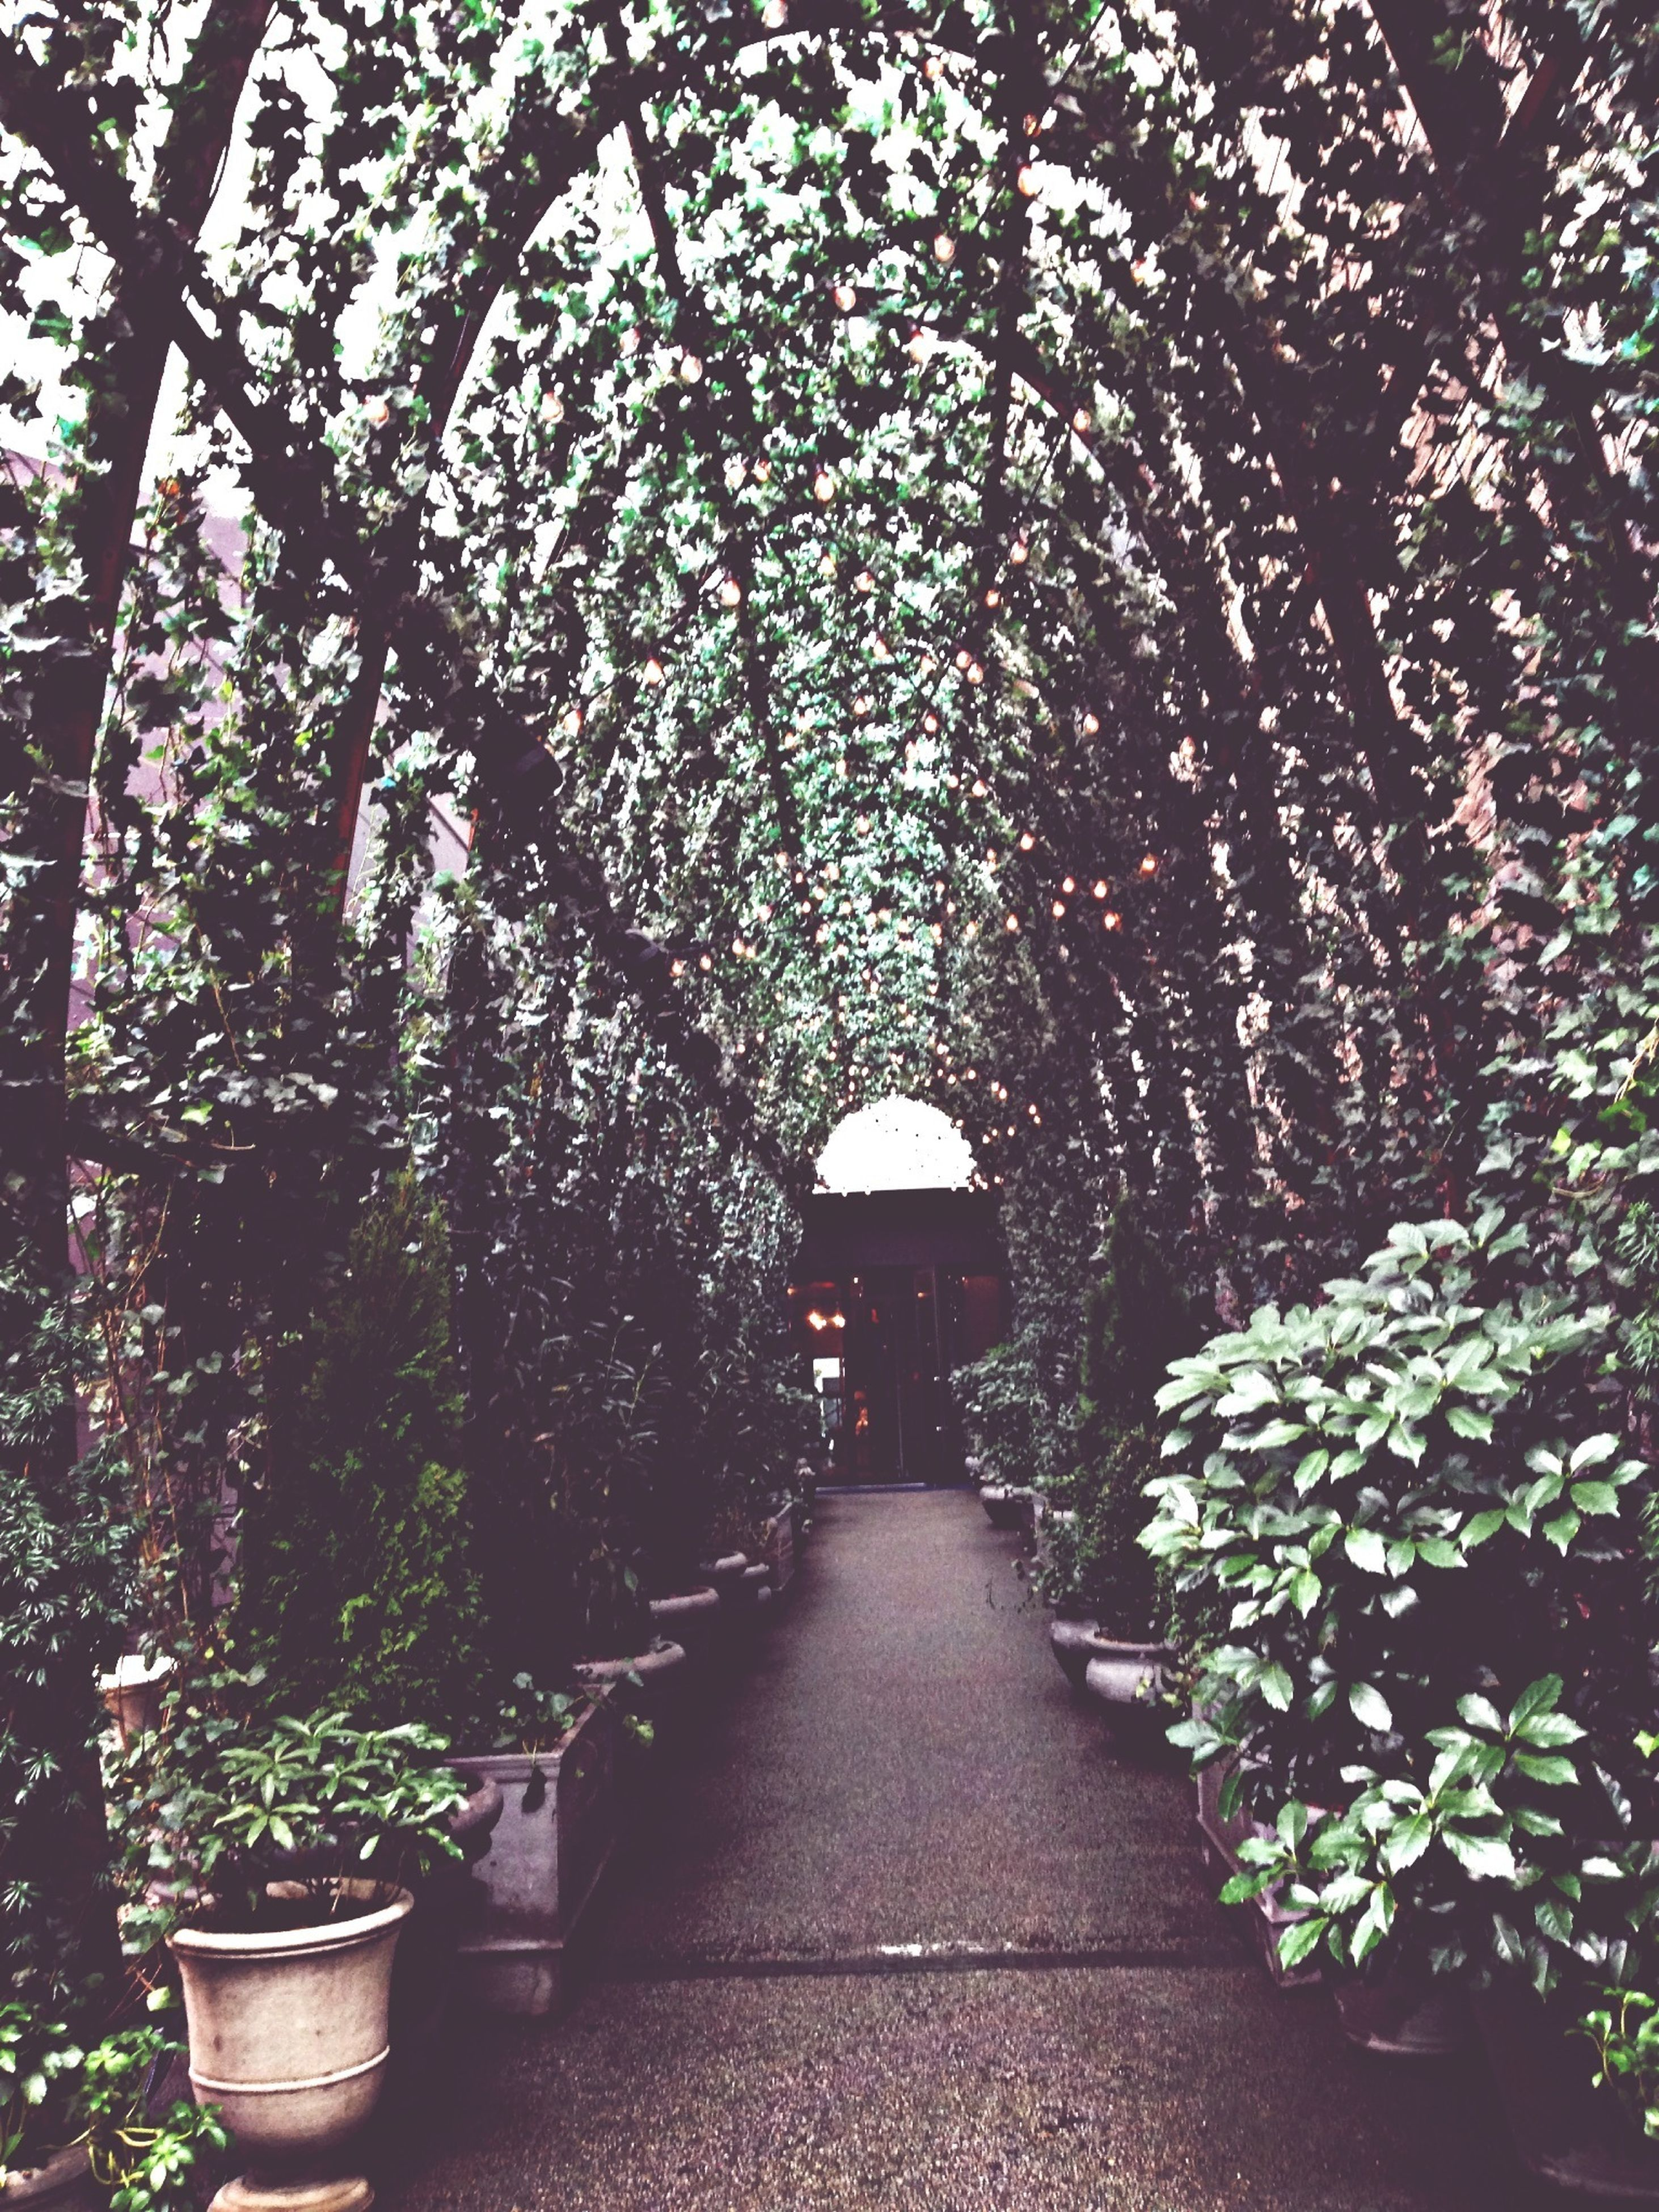 tree, the way forward, growth, diminishing perspective, built structure, arch, plant, nature, architecture, branch, vanishing point, footpath, flower, walkway, lighting equipment, park - man made space, tranquility, no people, outdoors, day